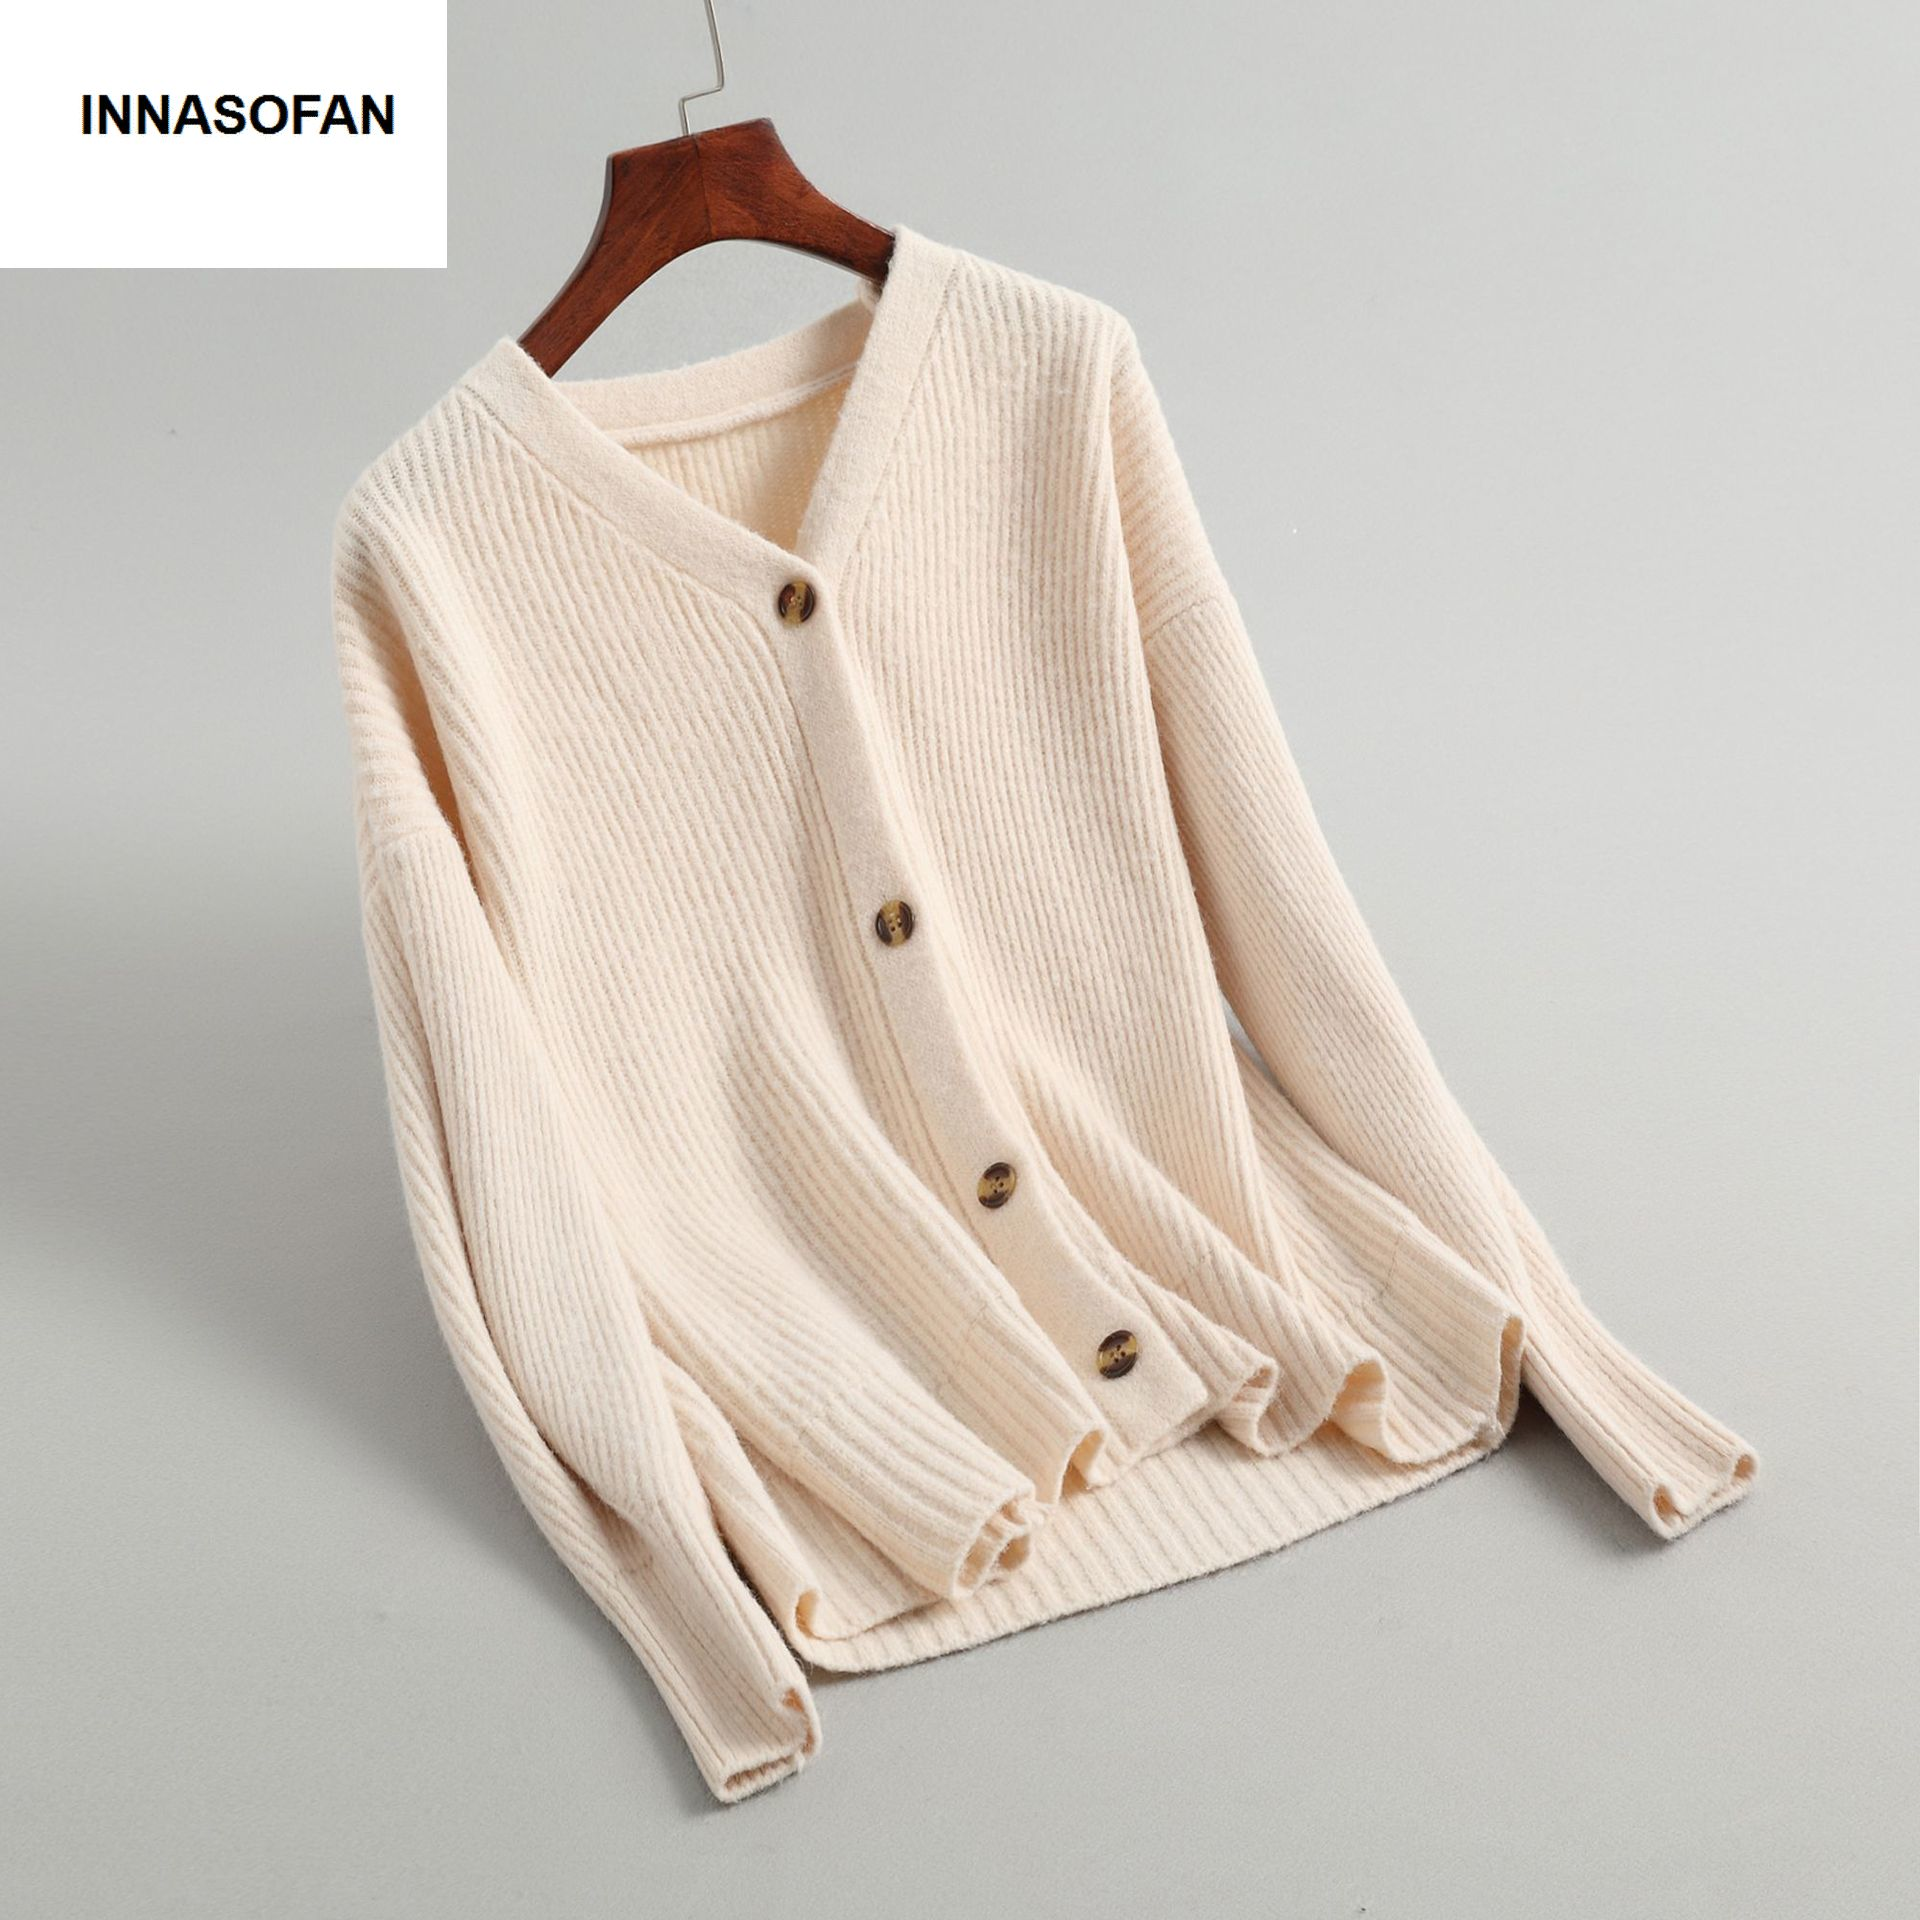 INNASOFAN Knitted Sweater Female Autumn Spring Long-sleeved Cardigan Euro-American Fashion Chic V-neck Solid Color